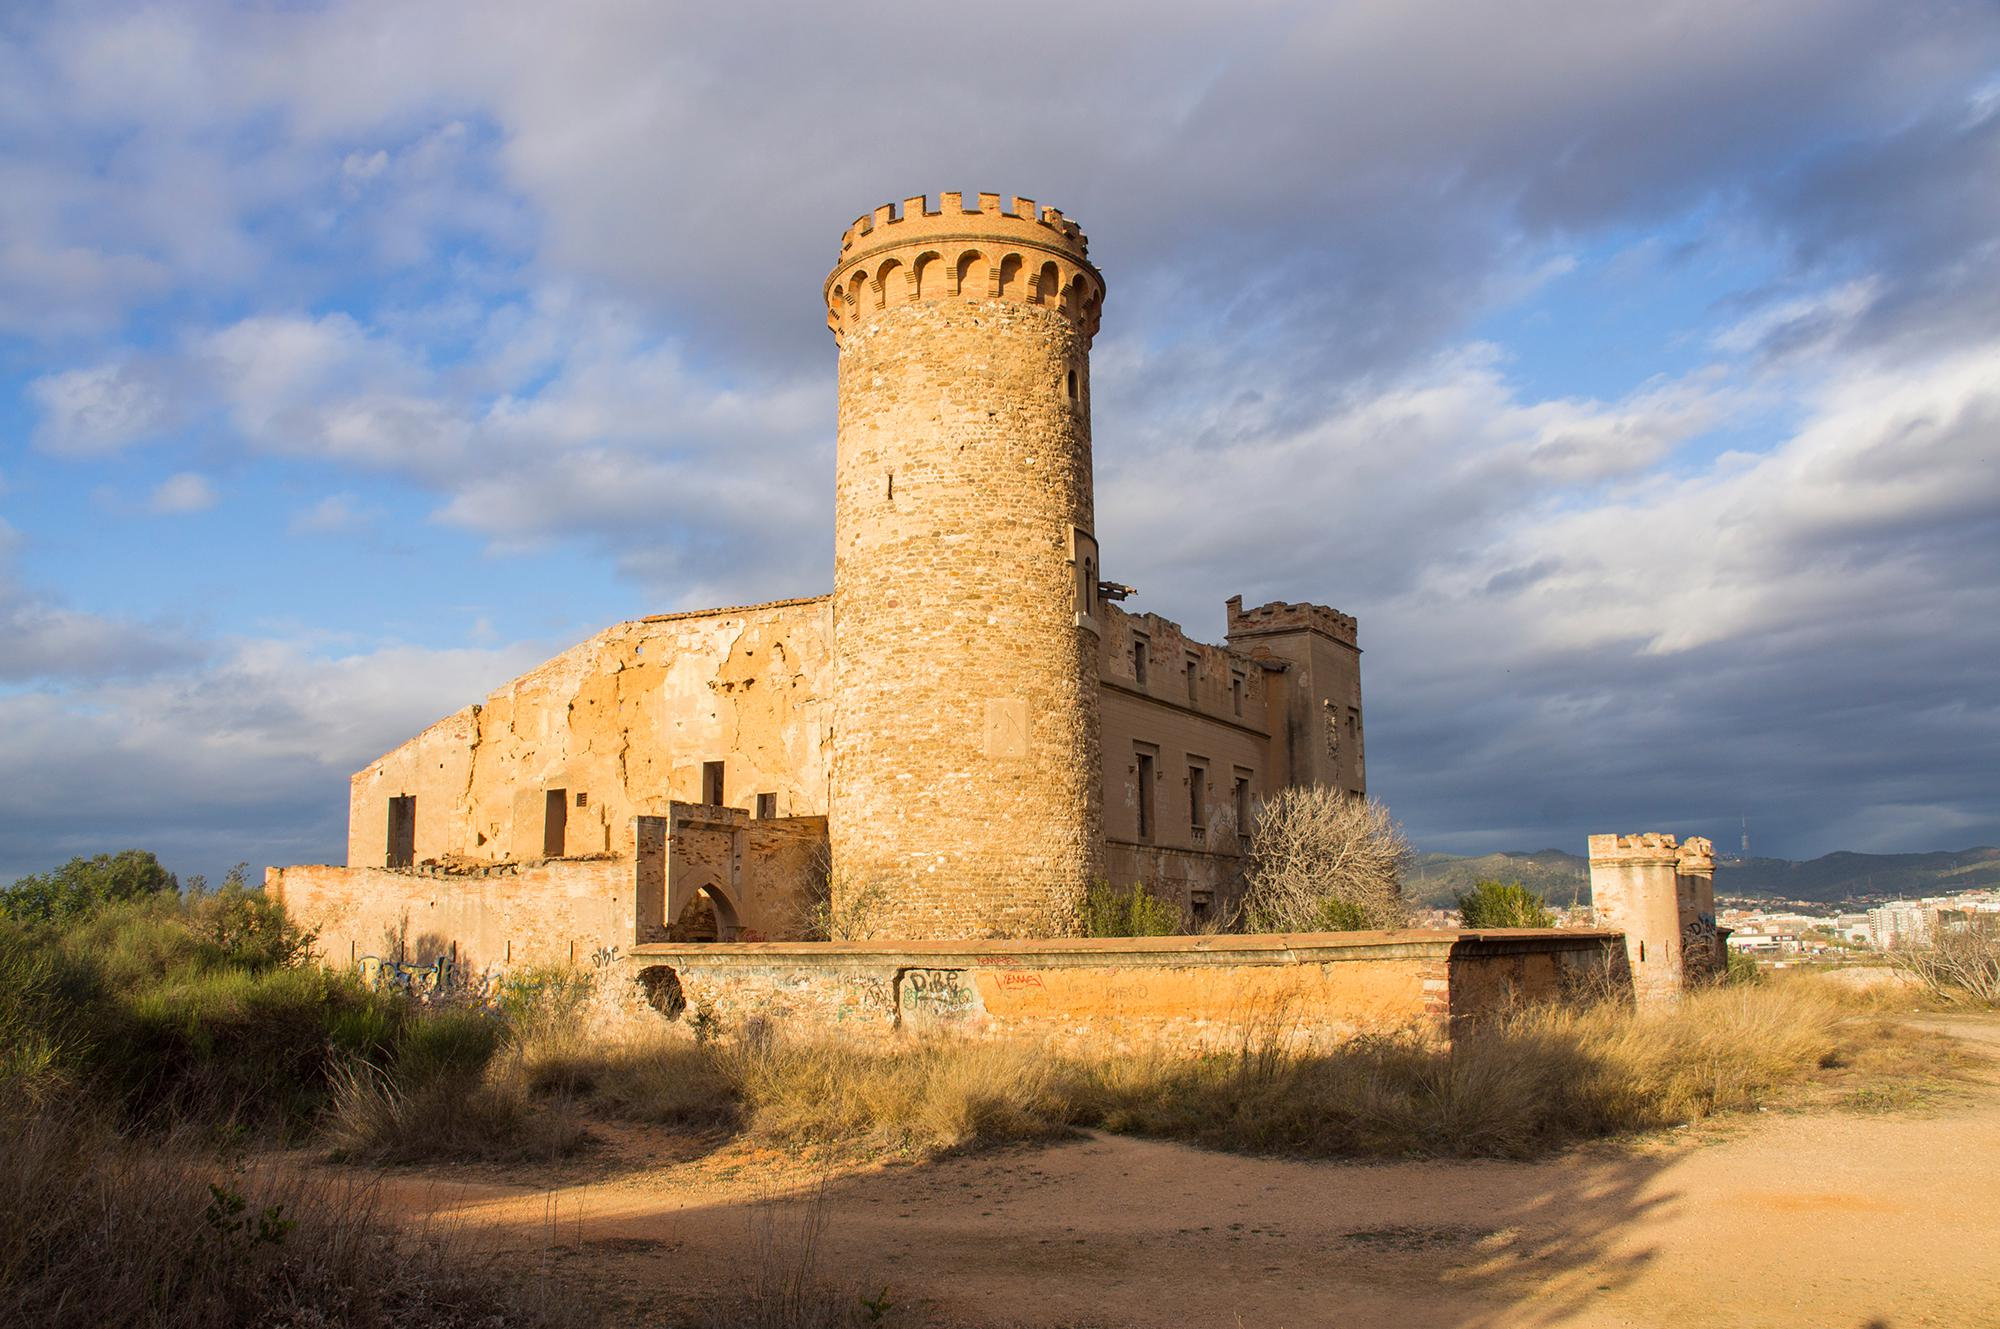 Torre Salvana in Colonia Guell in Catalonia